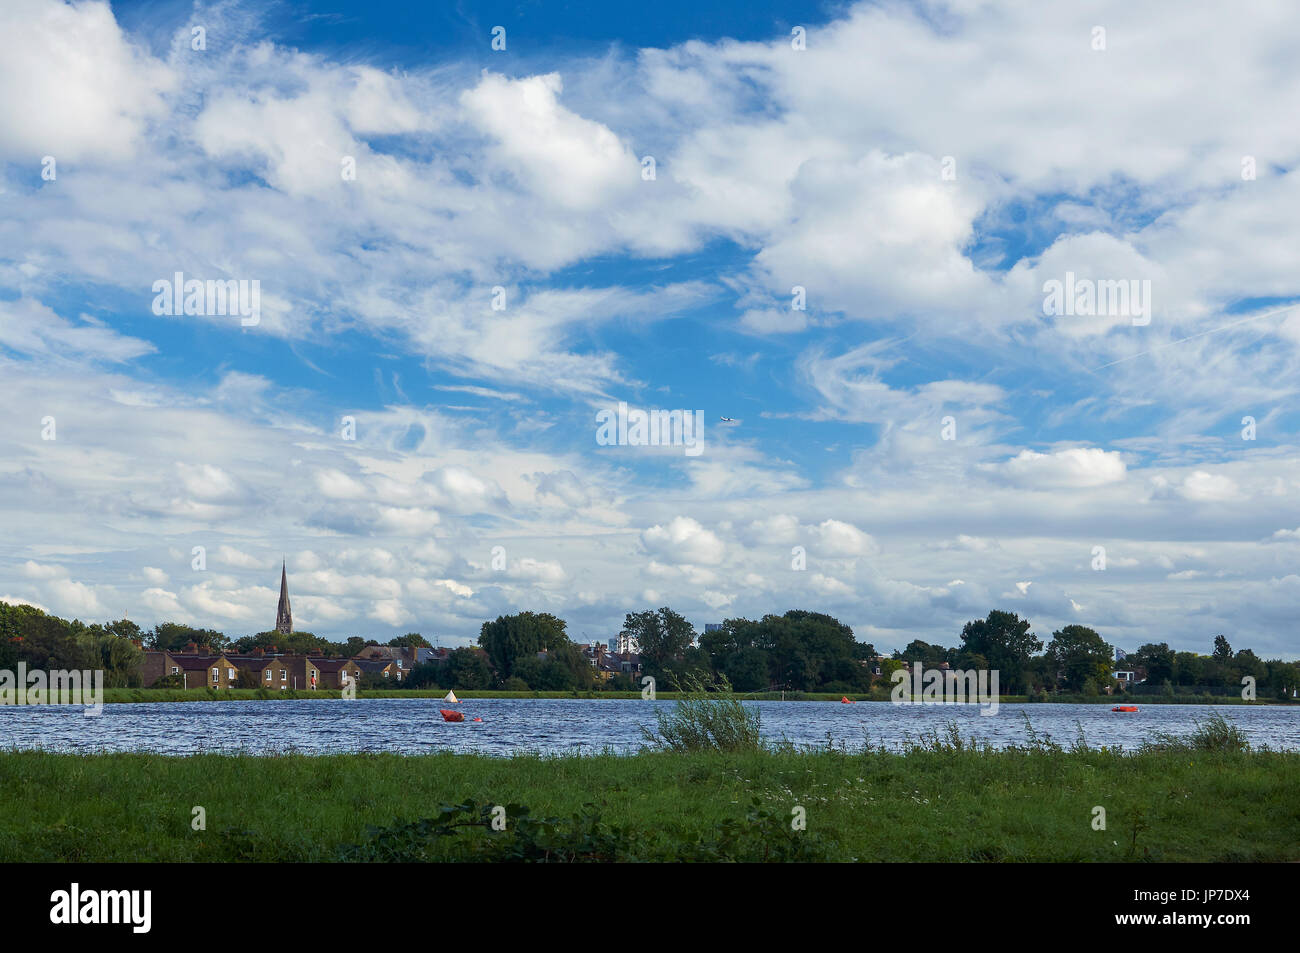 Skyscape over Woodberry Down, Stoke Newington, North London UK - Stock Image